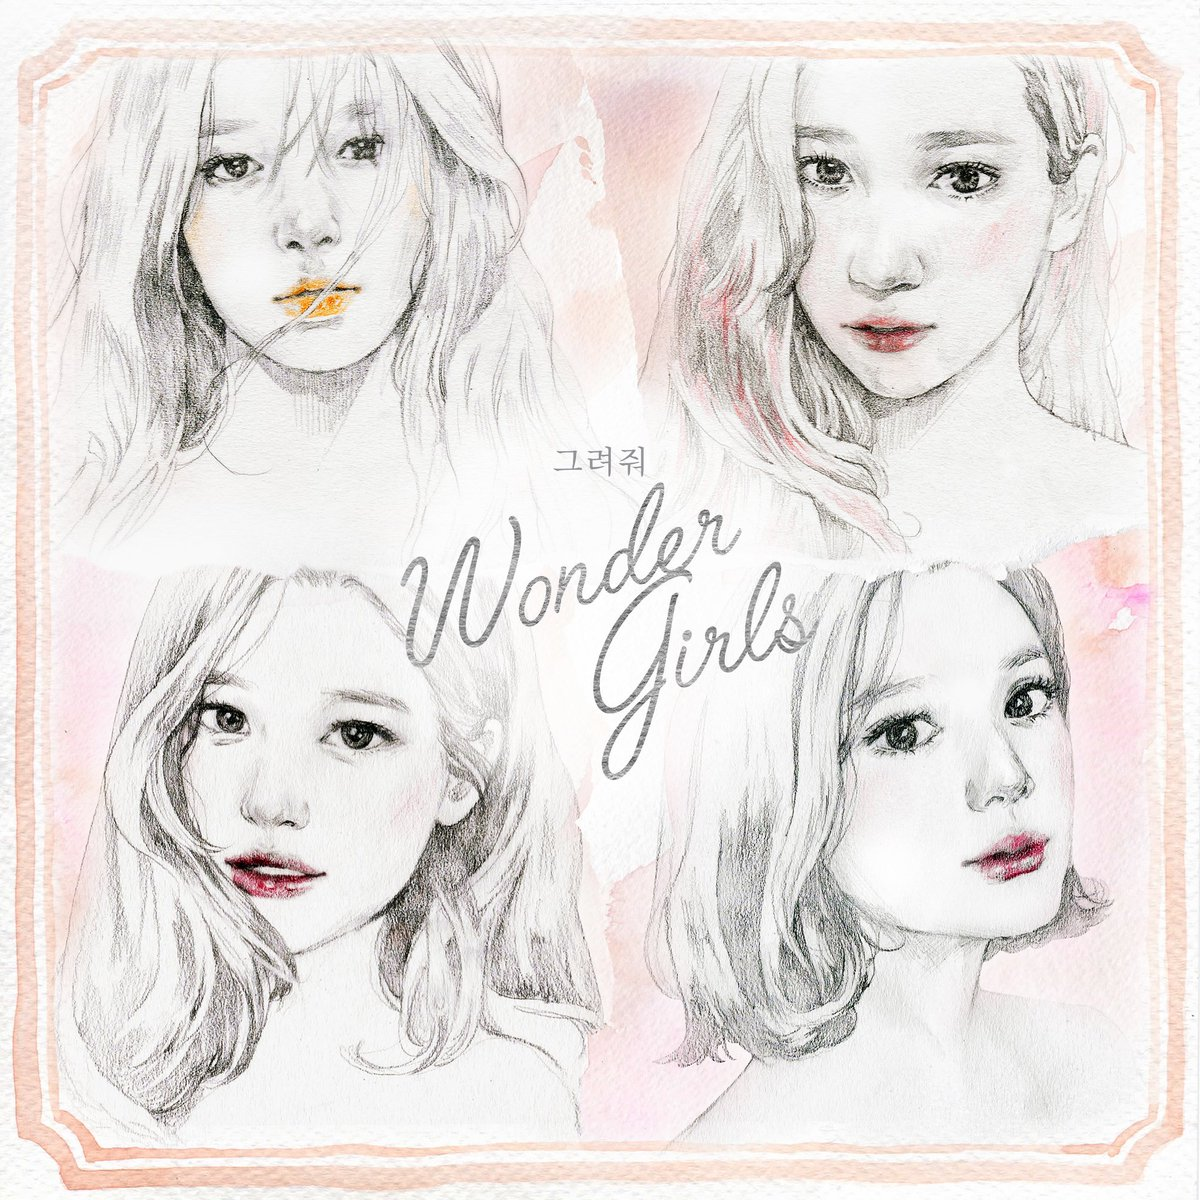 "원더걸스(Wonder Girls) ""그려줘 (DRAW ME)"" Cover Image 2017. 2. 10 0AM #원더걸스 #WonderGirls #그려줘 #DRAW_ME https://t.co/kPQuyxih12"